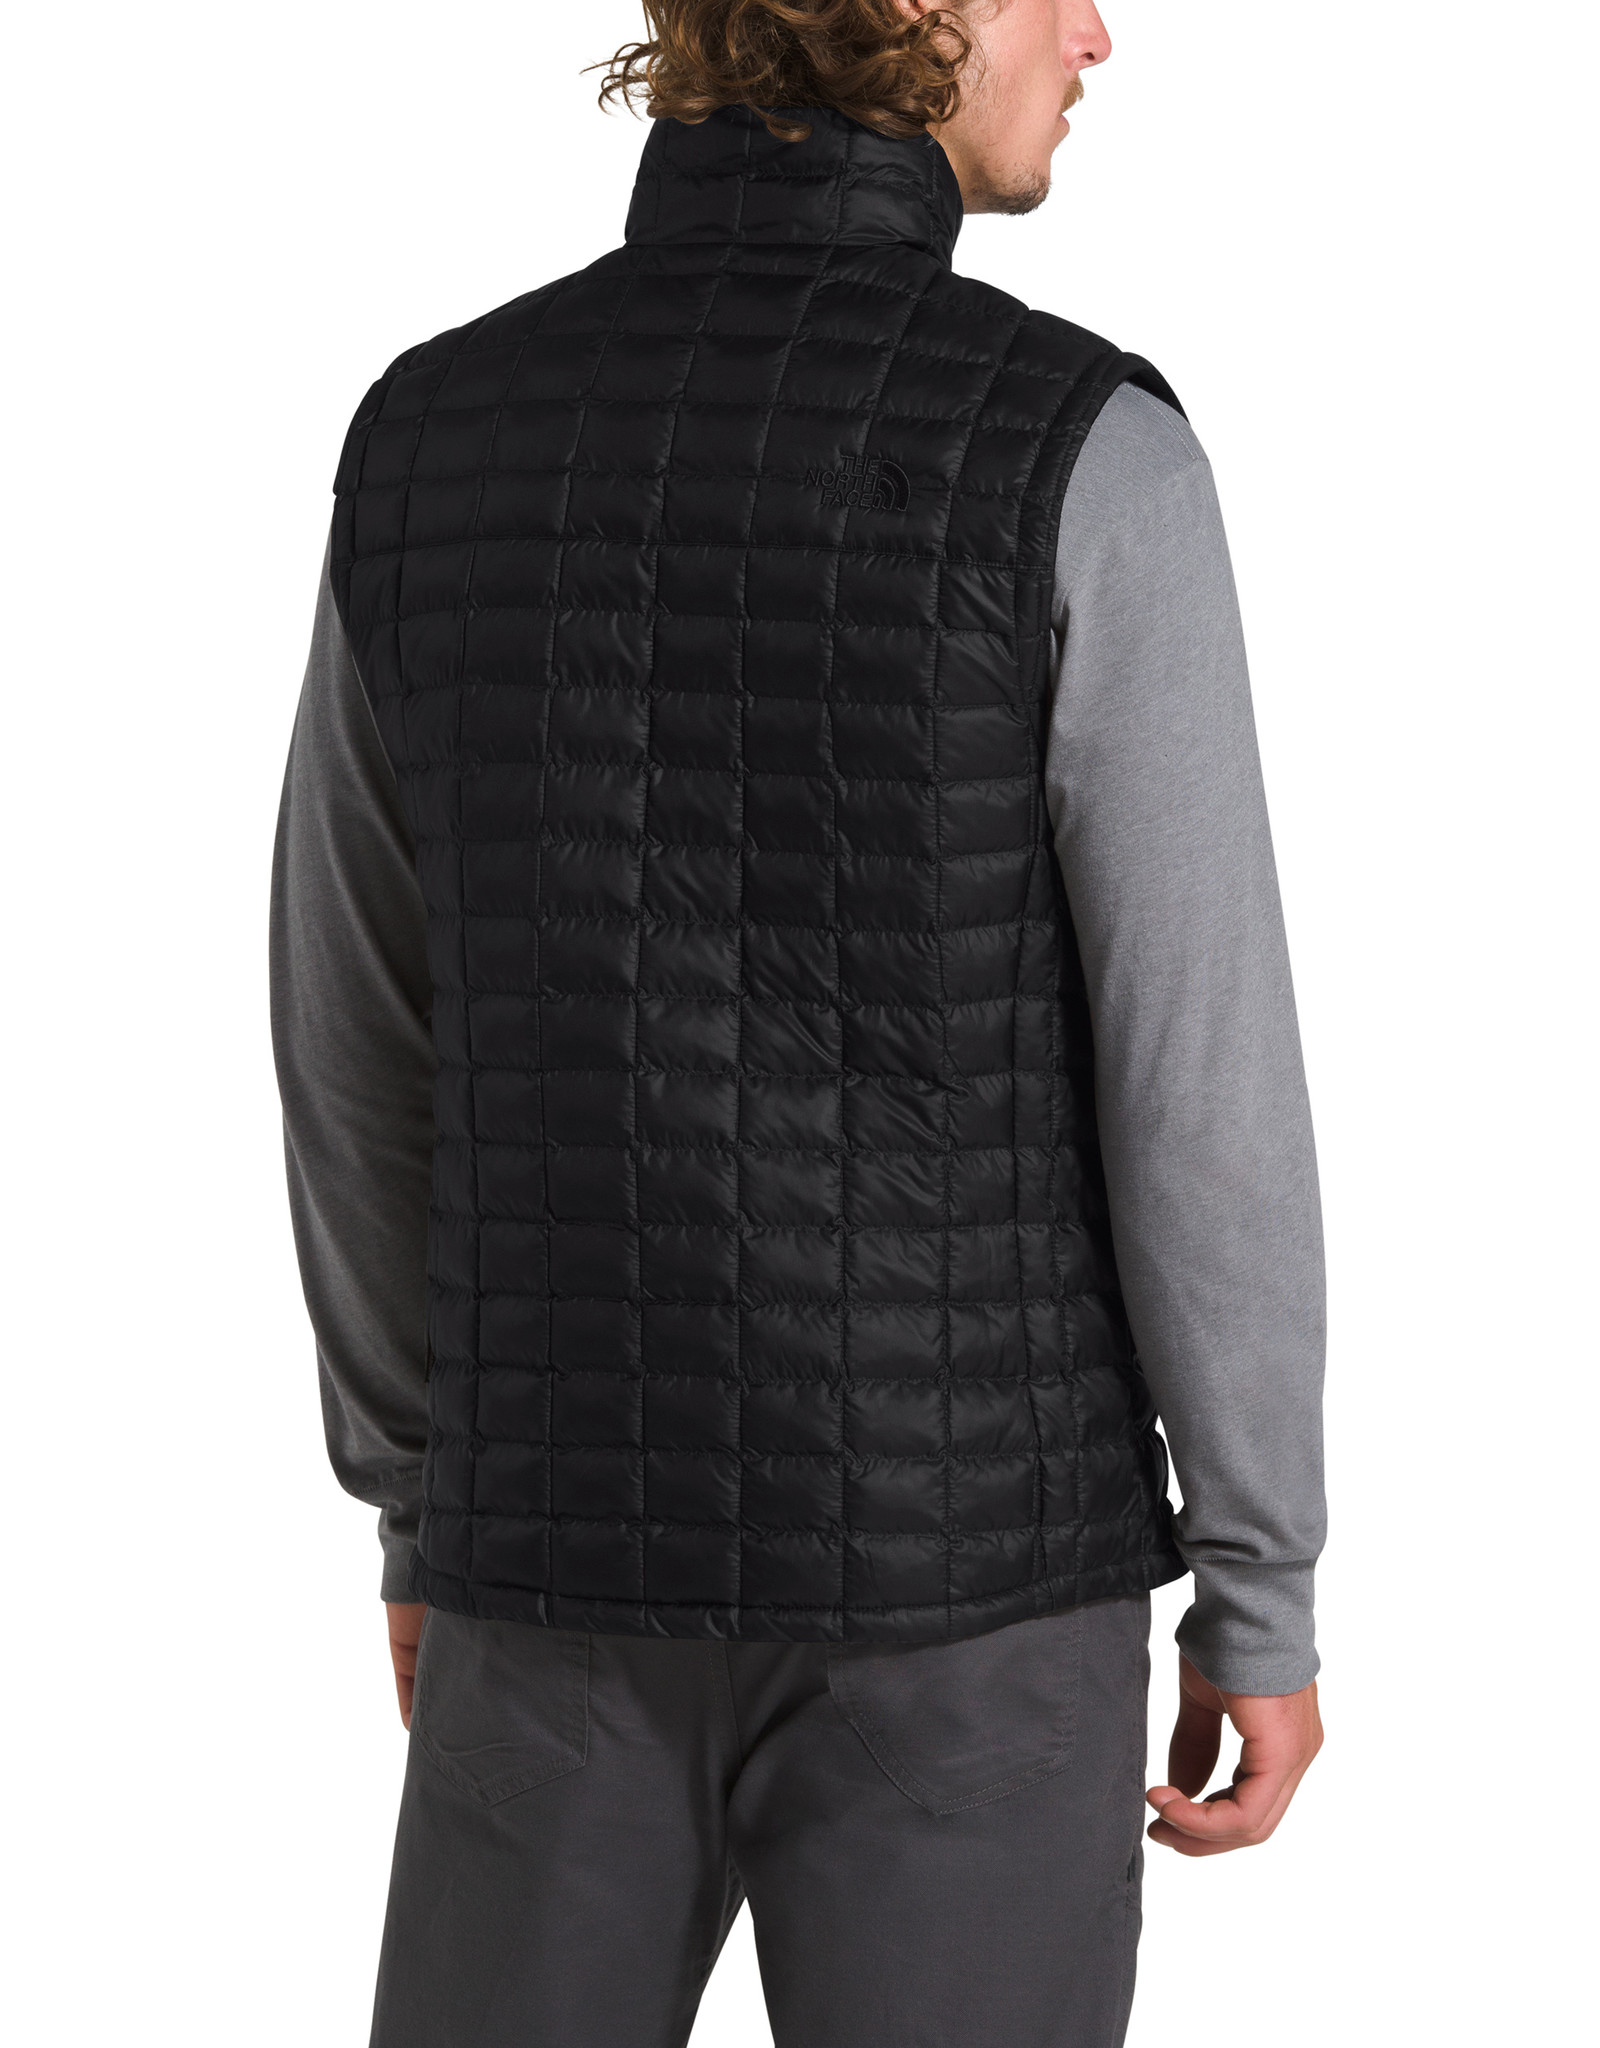 The North Face The North Face Men's Thermoball Eco Vest -W2020